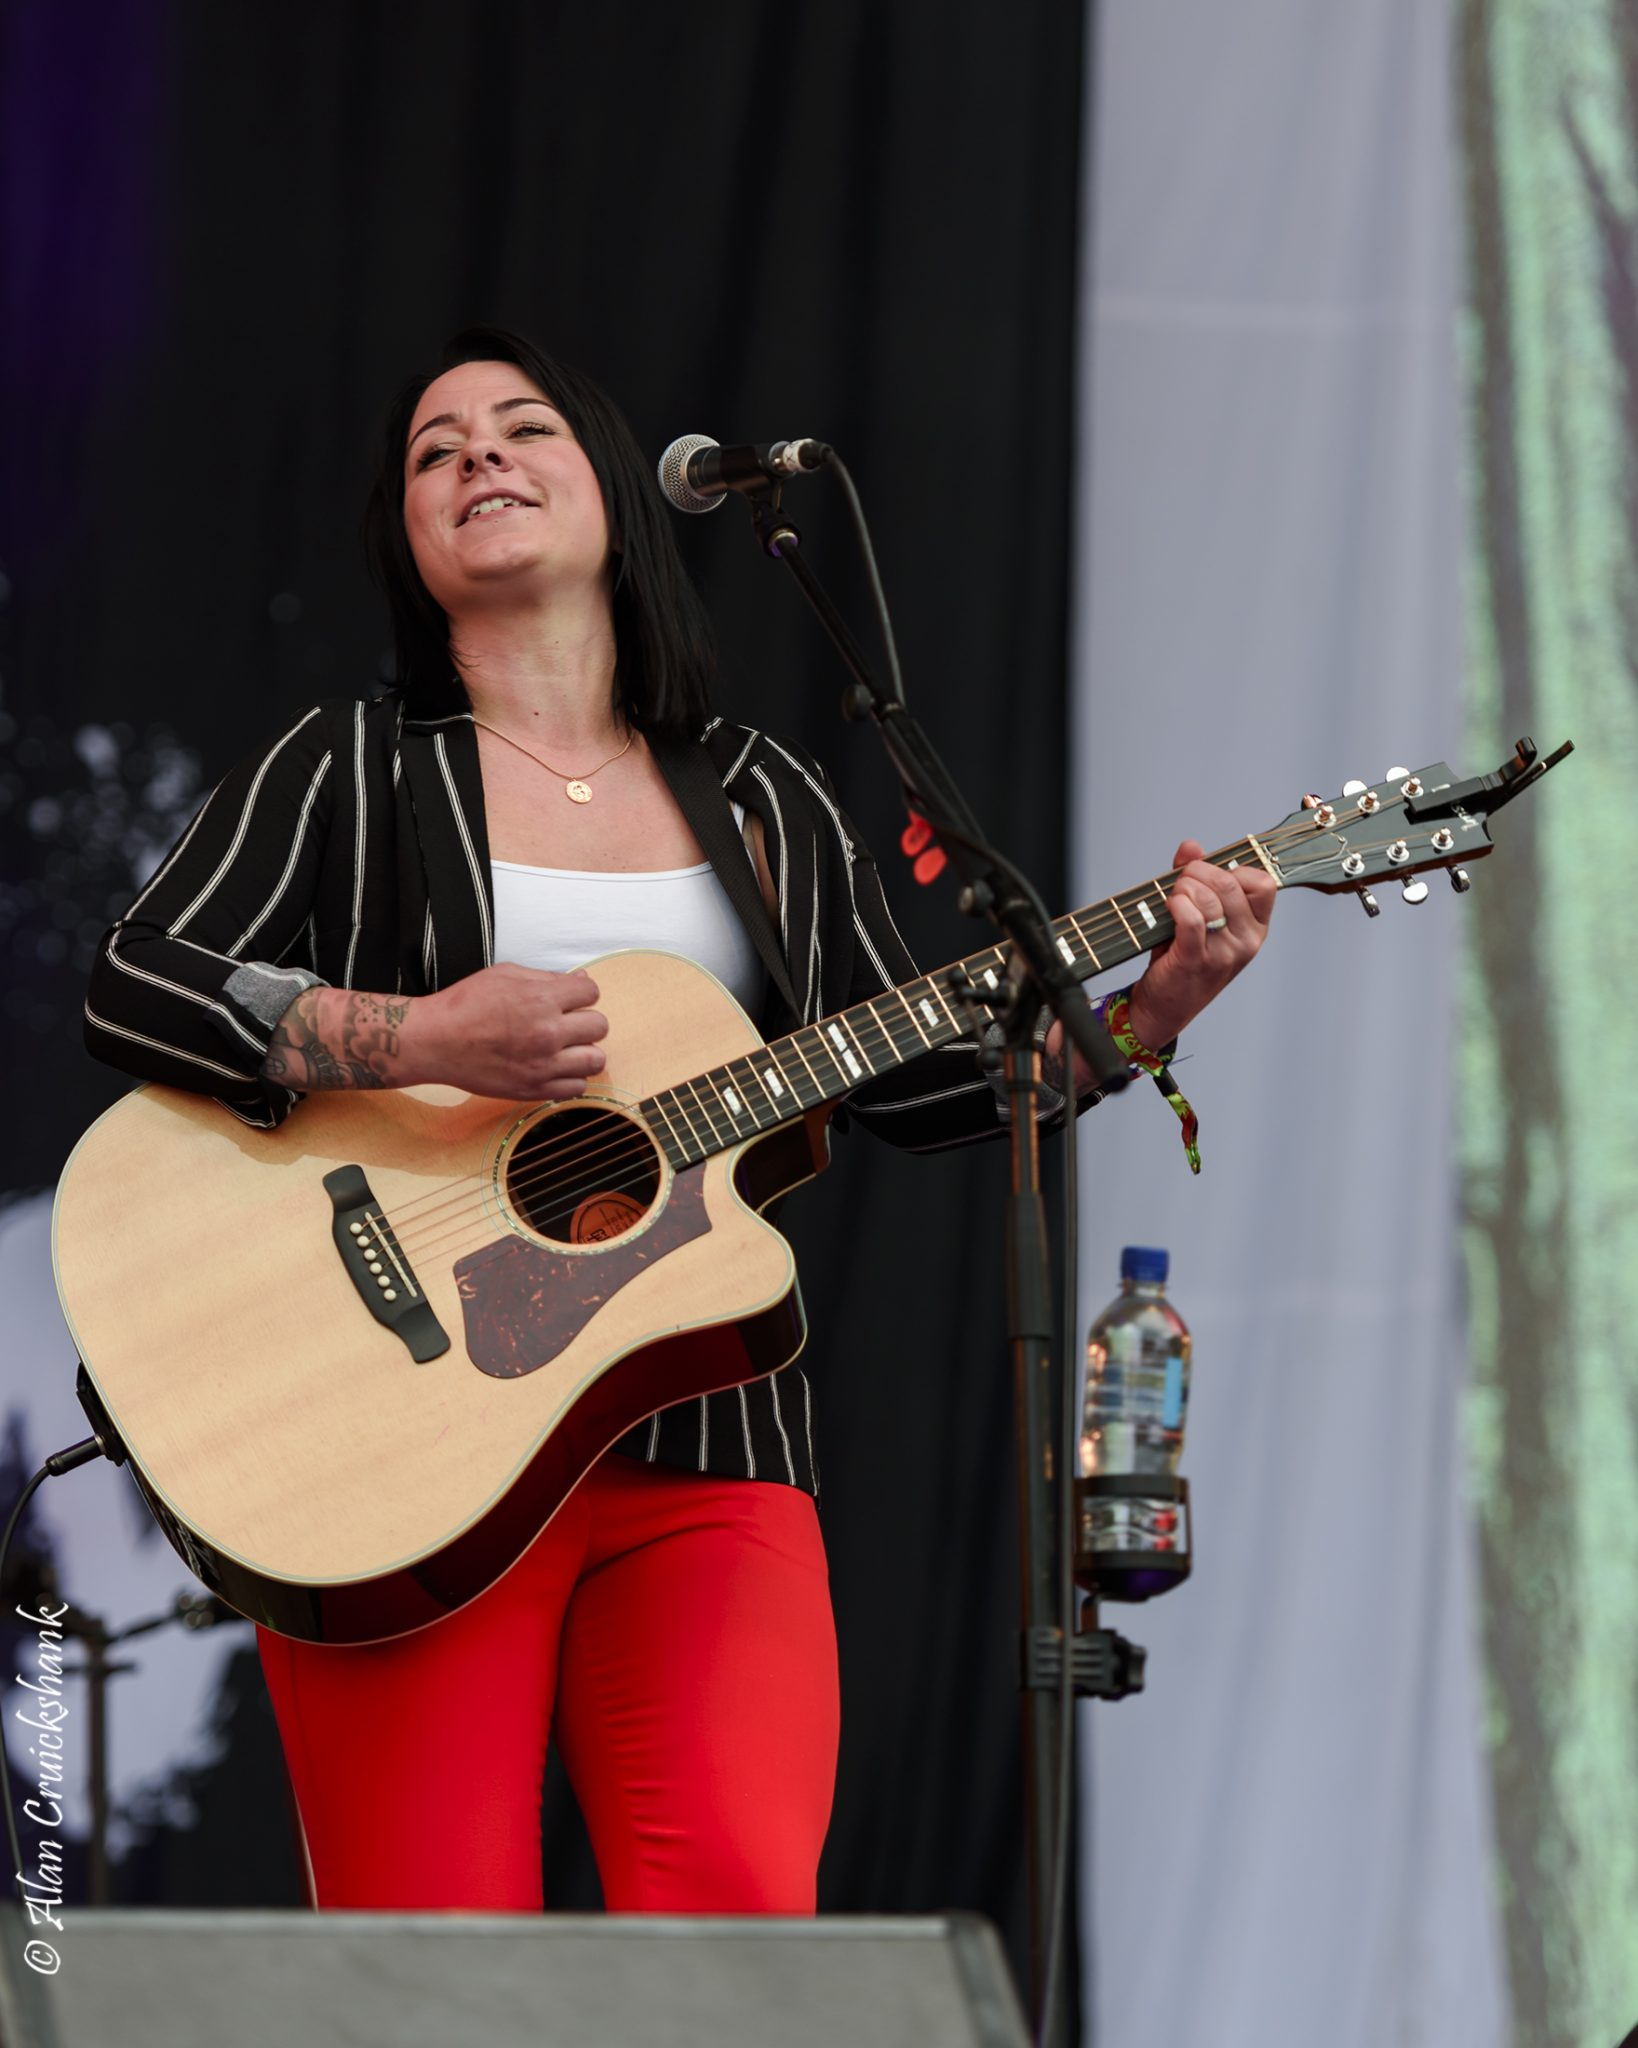 ou4pO - Lucy Spraggan Friday Belladrum 2018 - IMAGES